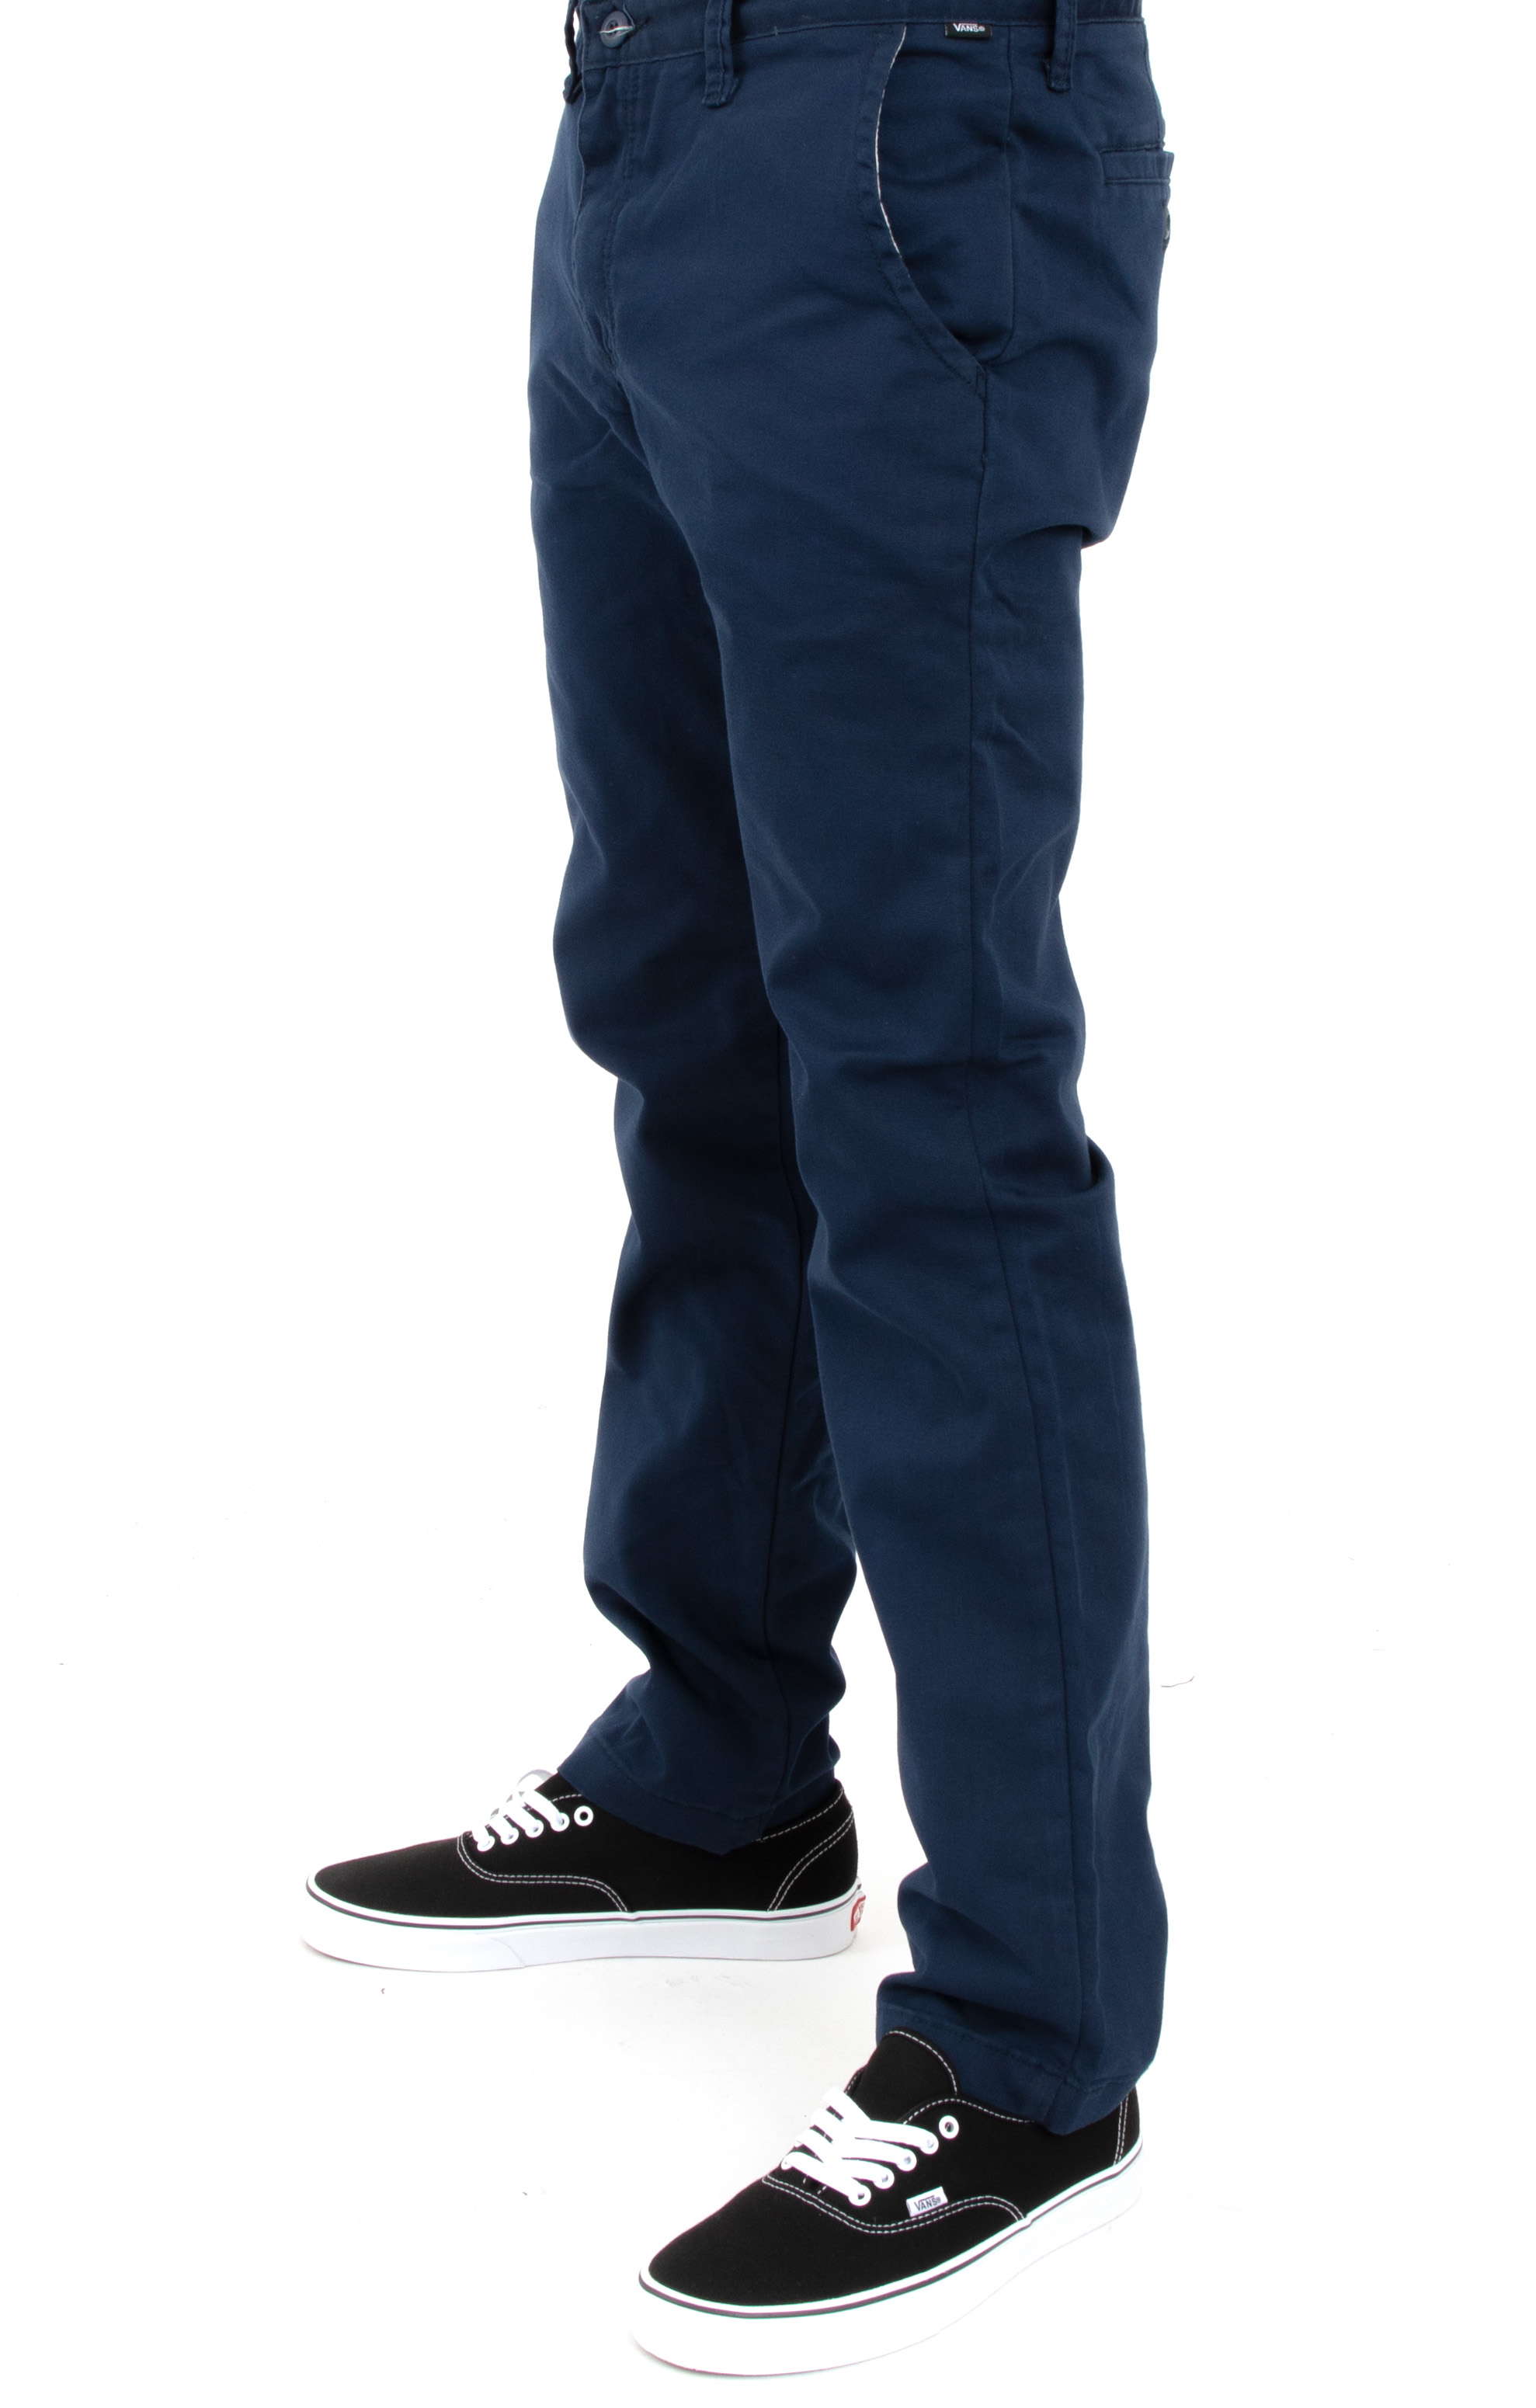 95193d0fe7 Authentic Chino Stretch Pant - Stormy Weather